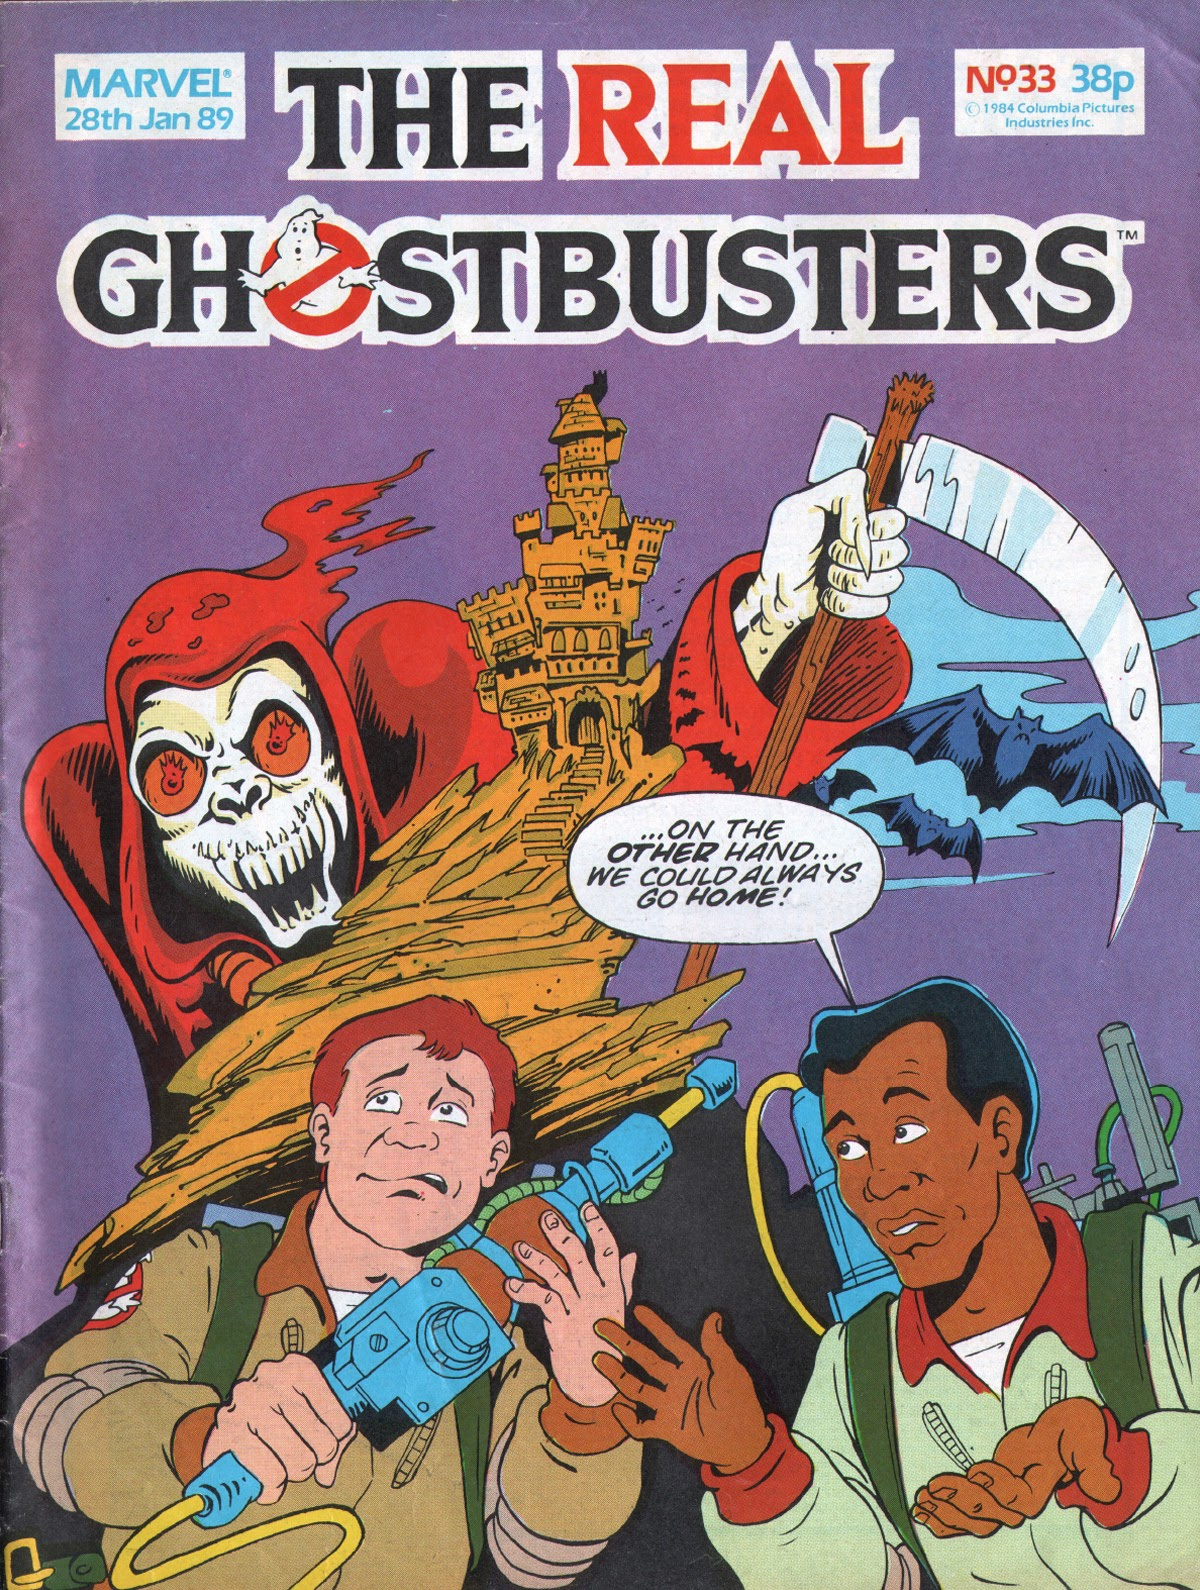 The Real Ghostbusters 33 Page 1